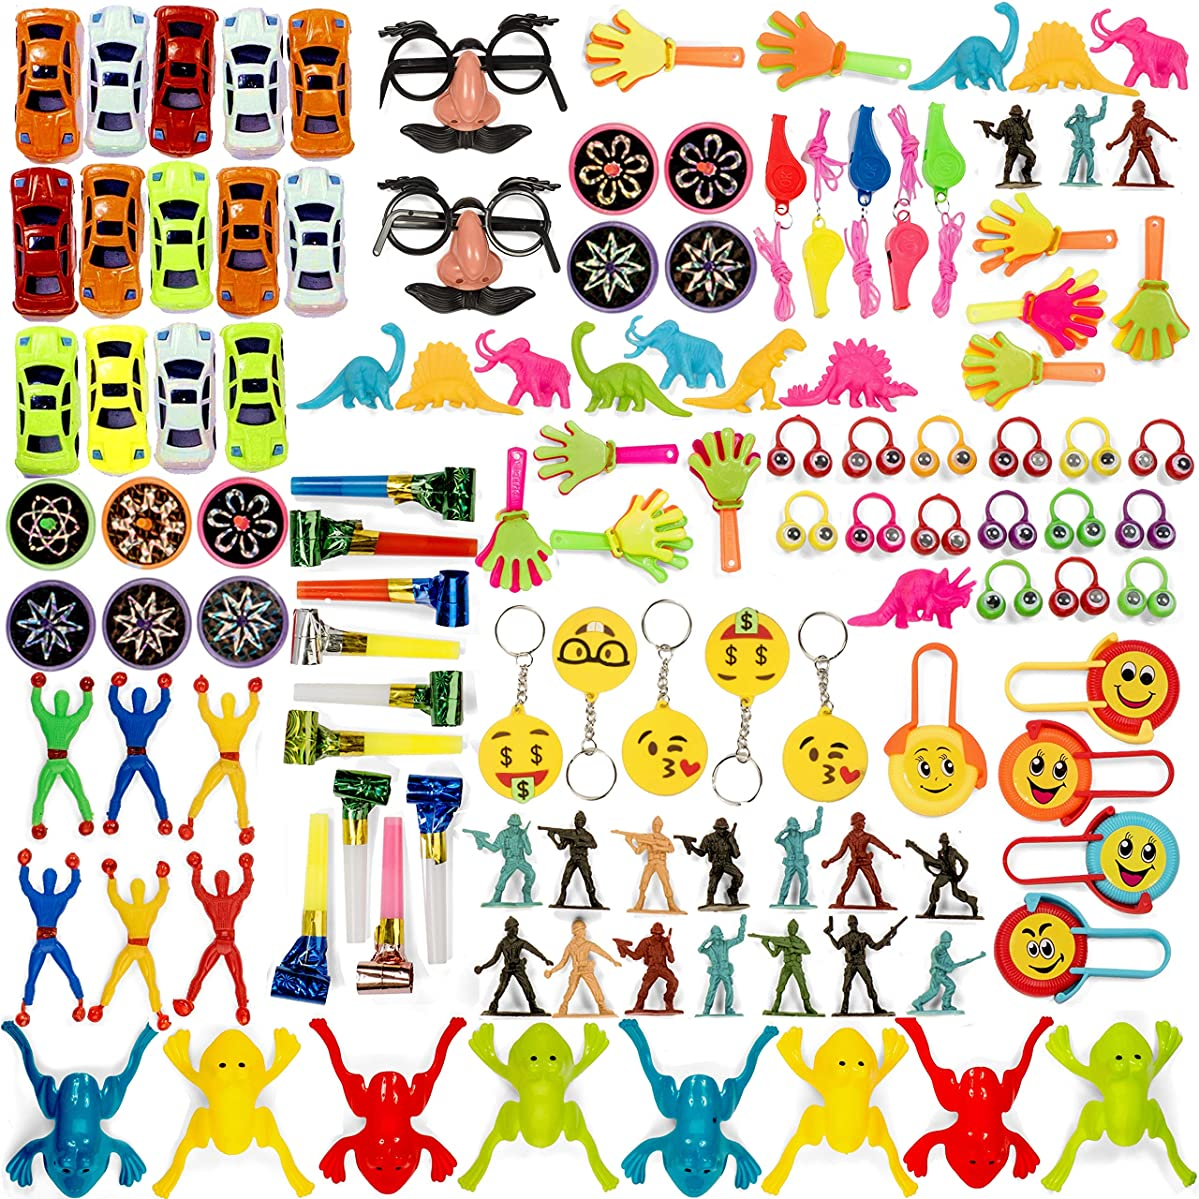 Bulk Toy Assortment - 120 Piece Party Favors for Kids, Treasure Box Prizes for Classroom, Pinata Filler, Small Toys, Goodie Bag Fillers, Little Prizes